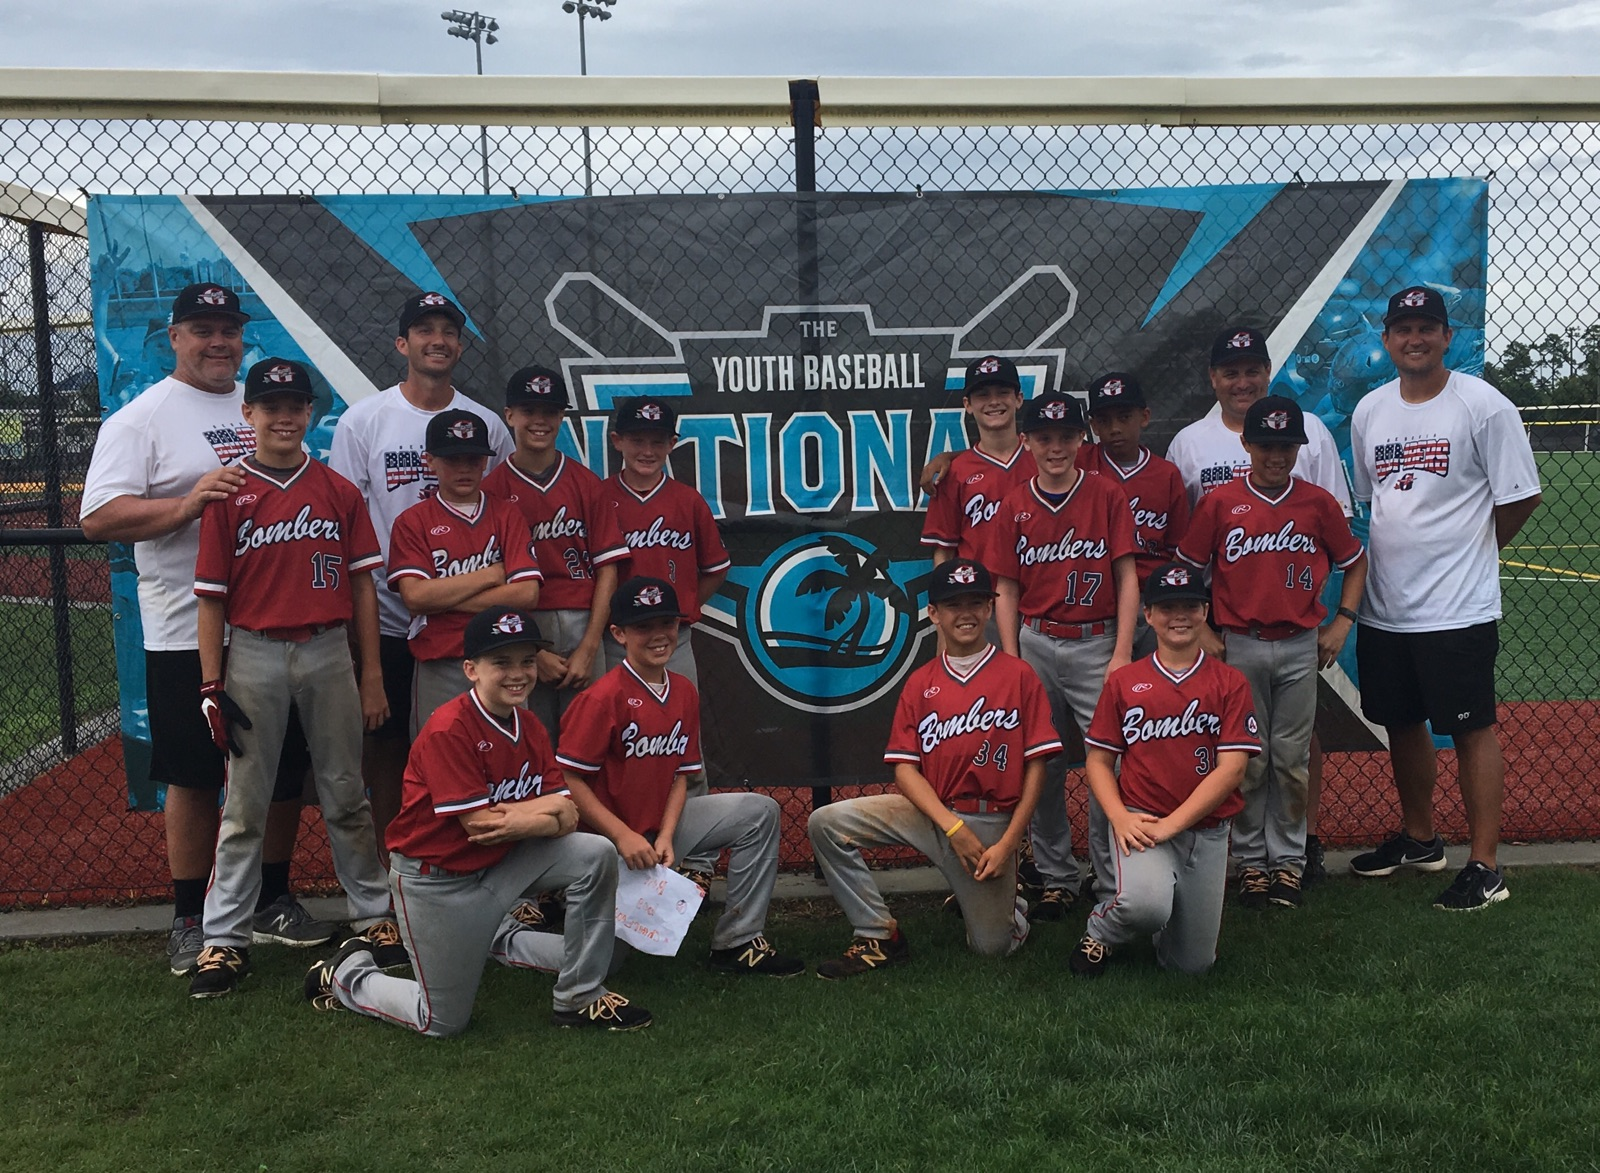 Bombers 11U (Davis) Finishes Runner Up at Baseball Youth Nationals